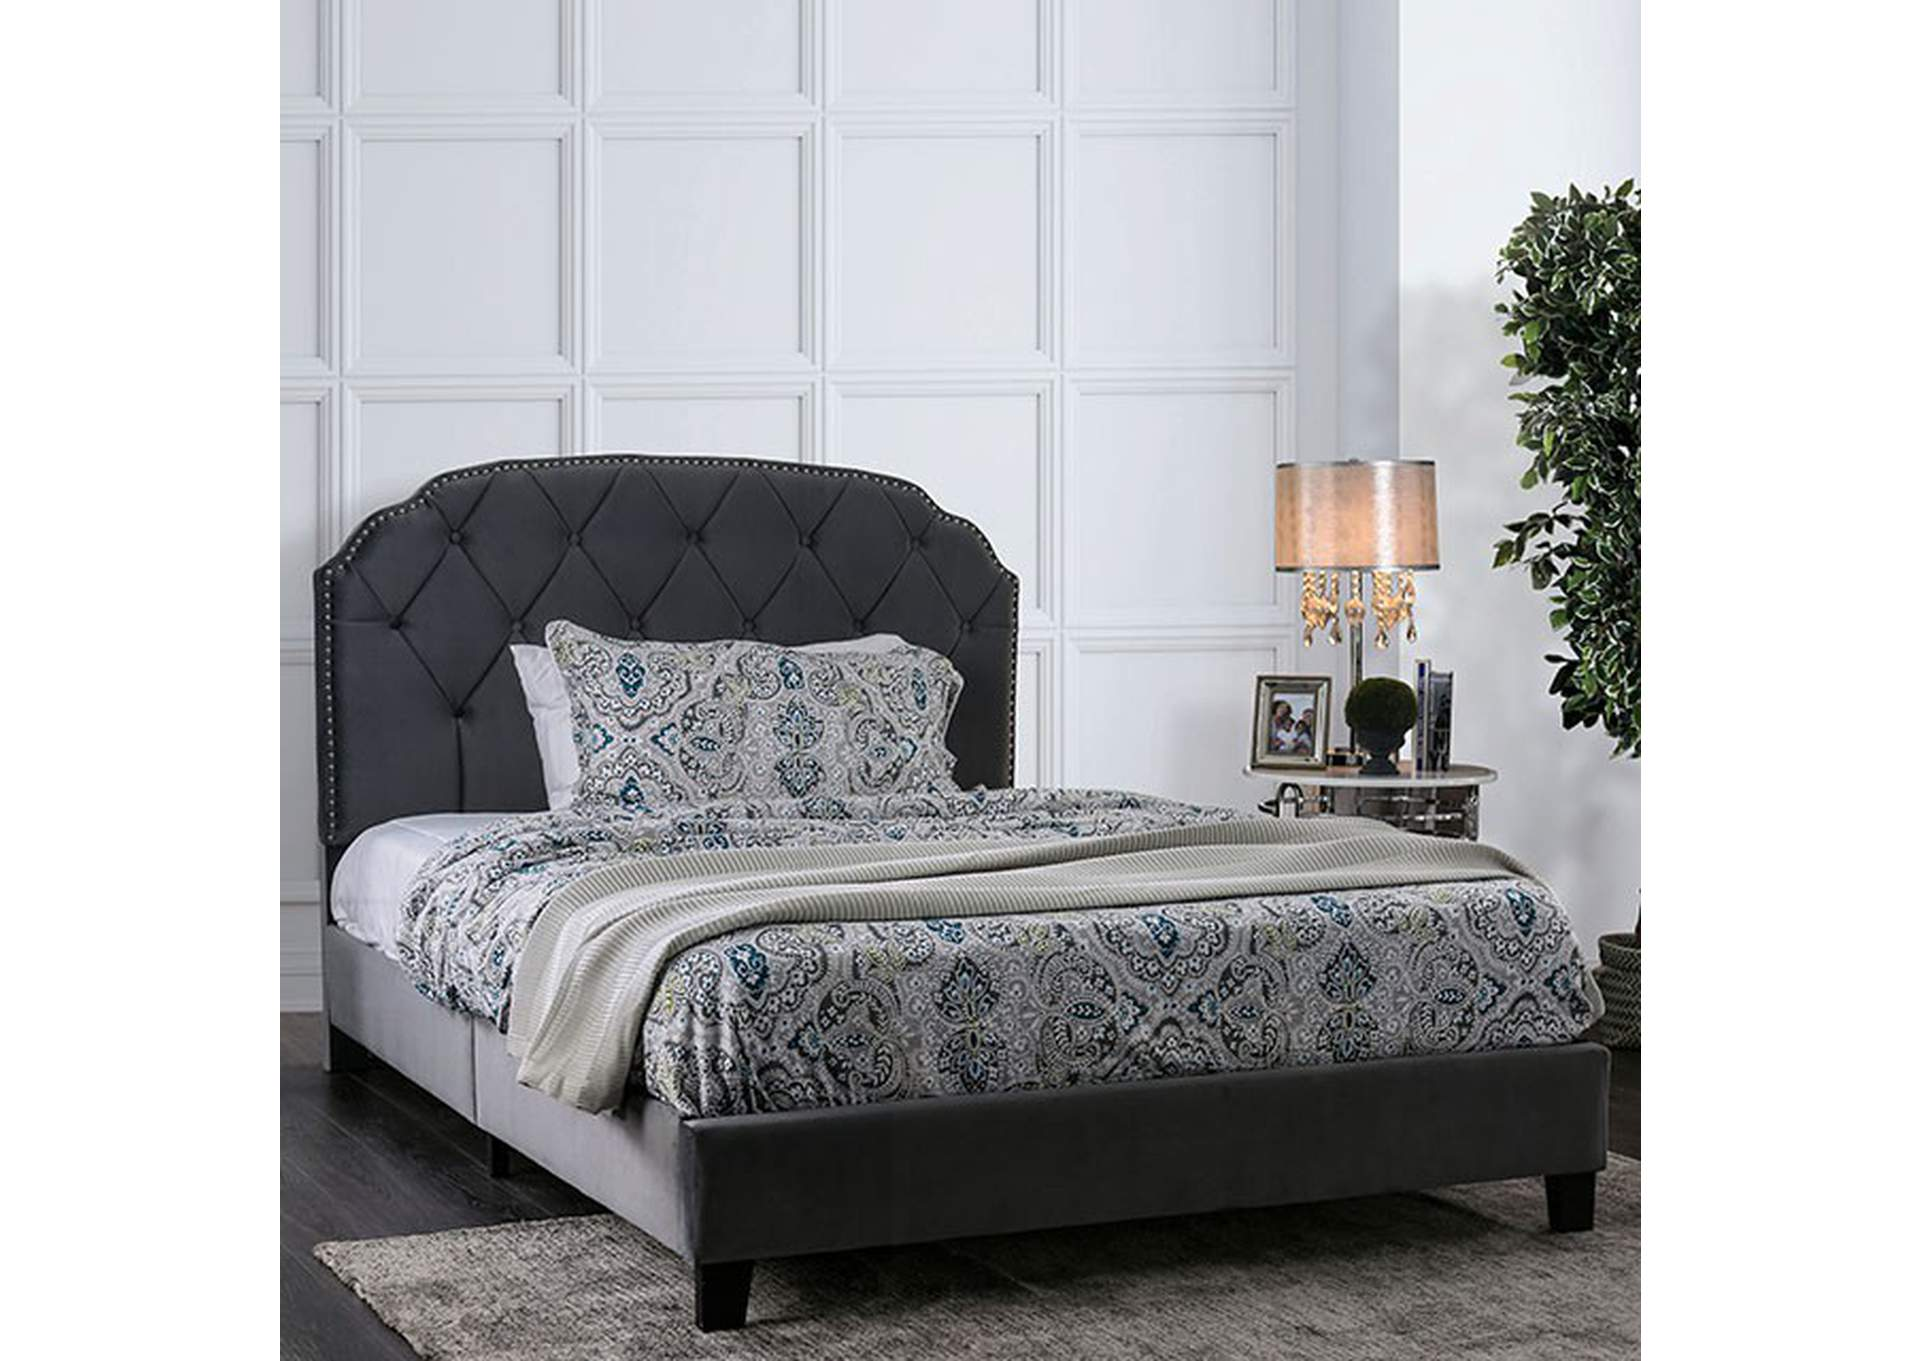 Osnabrock Upholstered Twin Platform Bed,Furniture of America